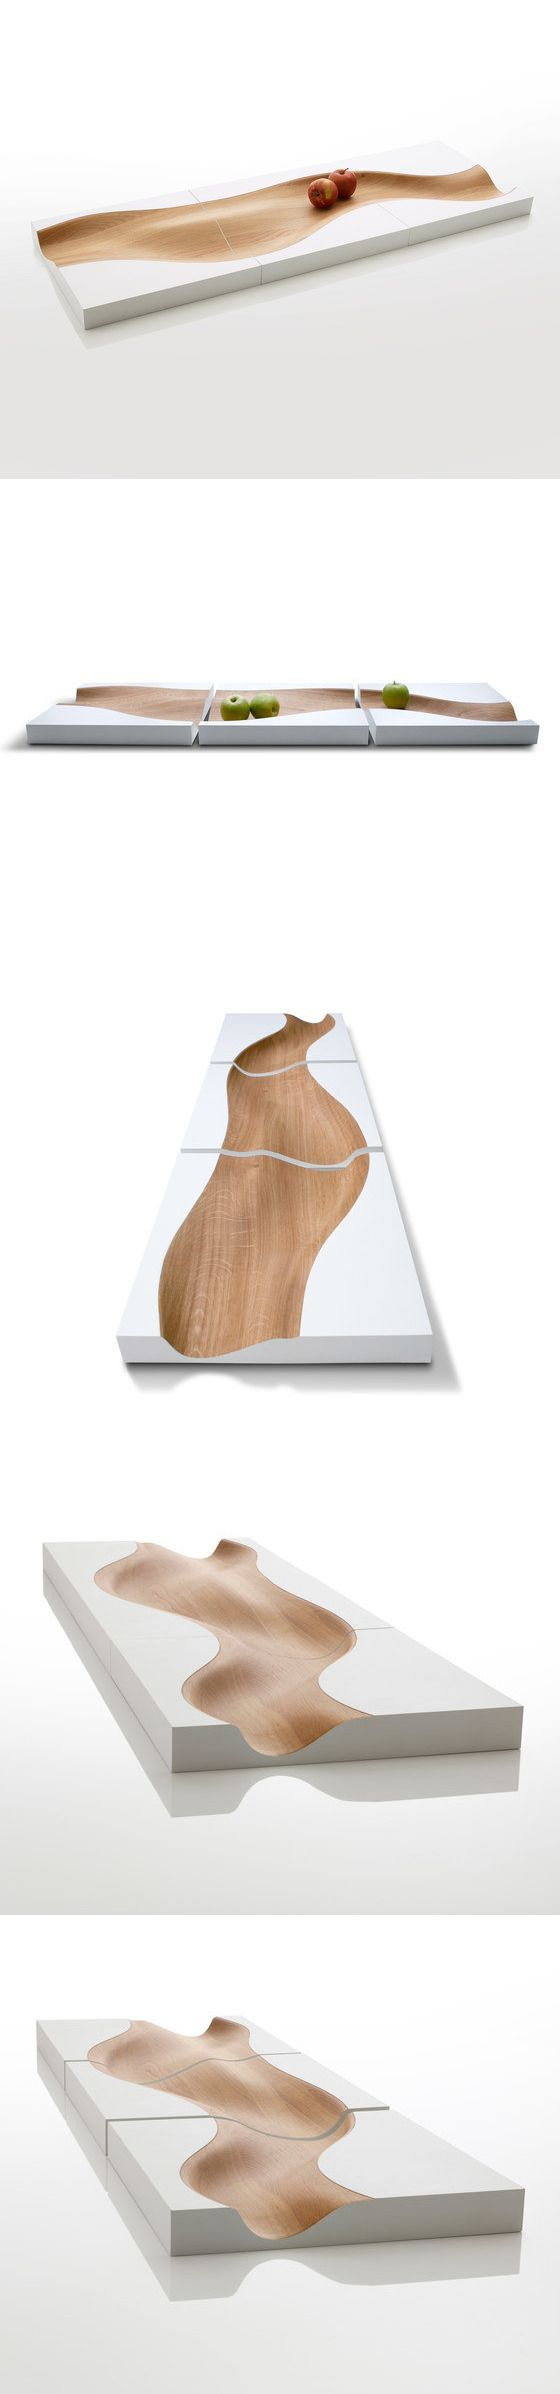 Studio Segers Vloed Tray - The VLOED is an evocative composition of wooden trays shaped like a meandering river through three square sections. This sculptural, sensual and organic design requires both craftsmanship and high technical skills to be produced from a block of solid oak. The natural oiled oak colour represents the river, whereas the riverbanks are contrasting white covers. Available as a set of three trays, or as one separate tray, in oak (natural oiled) with white covered sides.